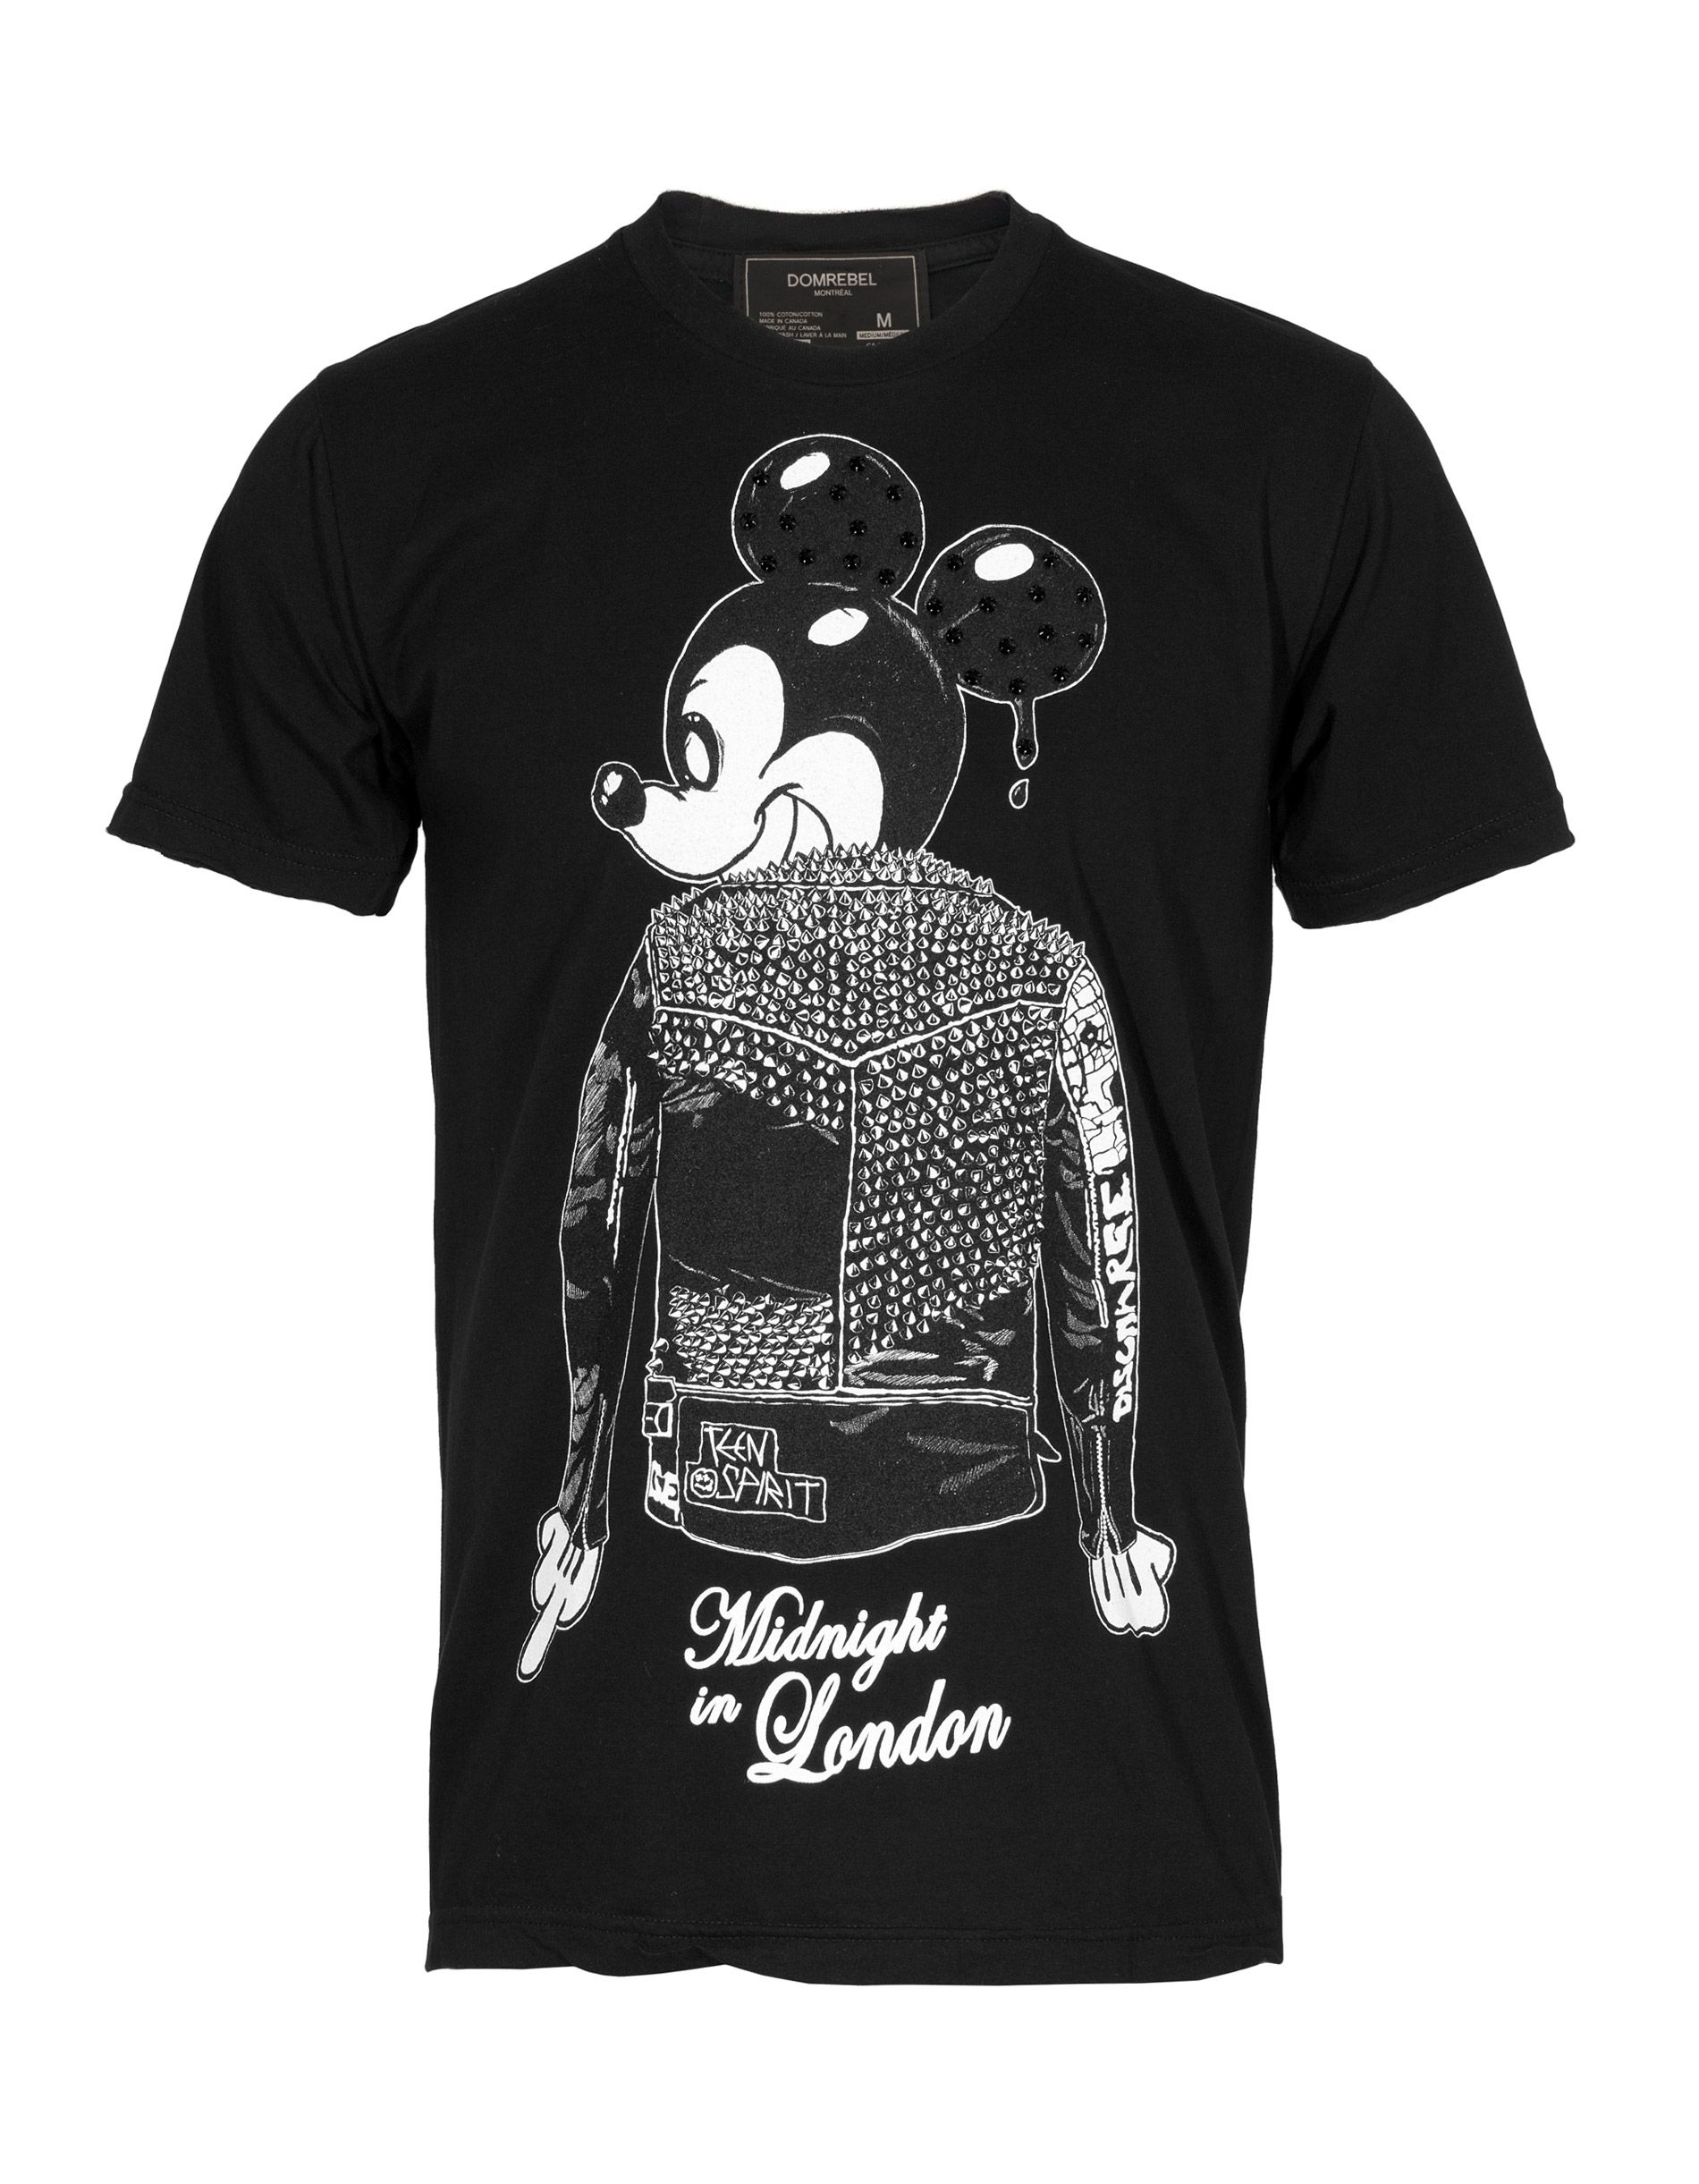 #DOMREBEL Midnight Mouse Black T-shirt with rhinestone details